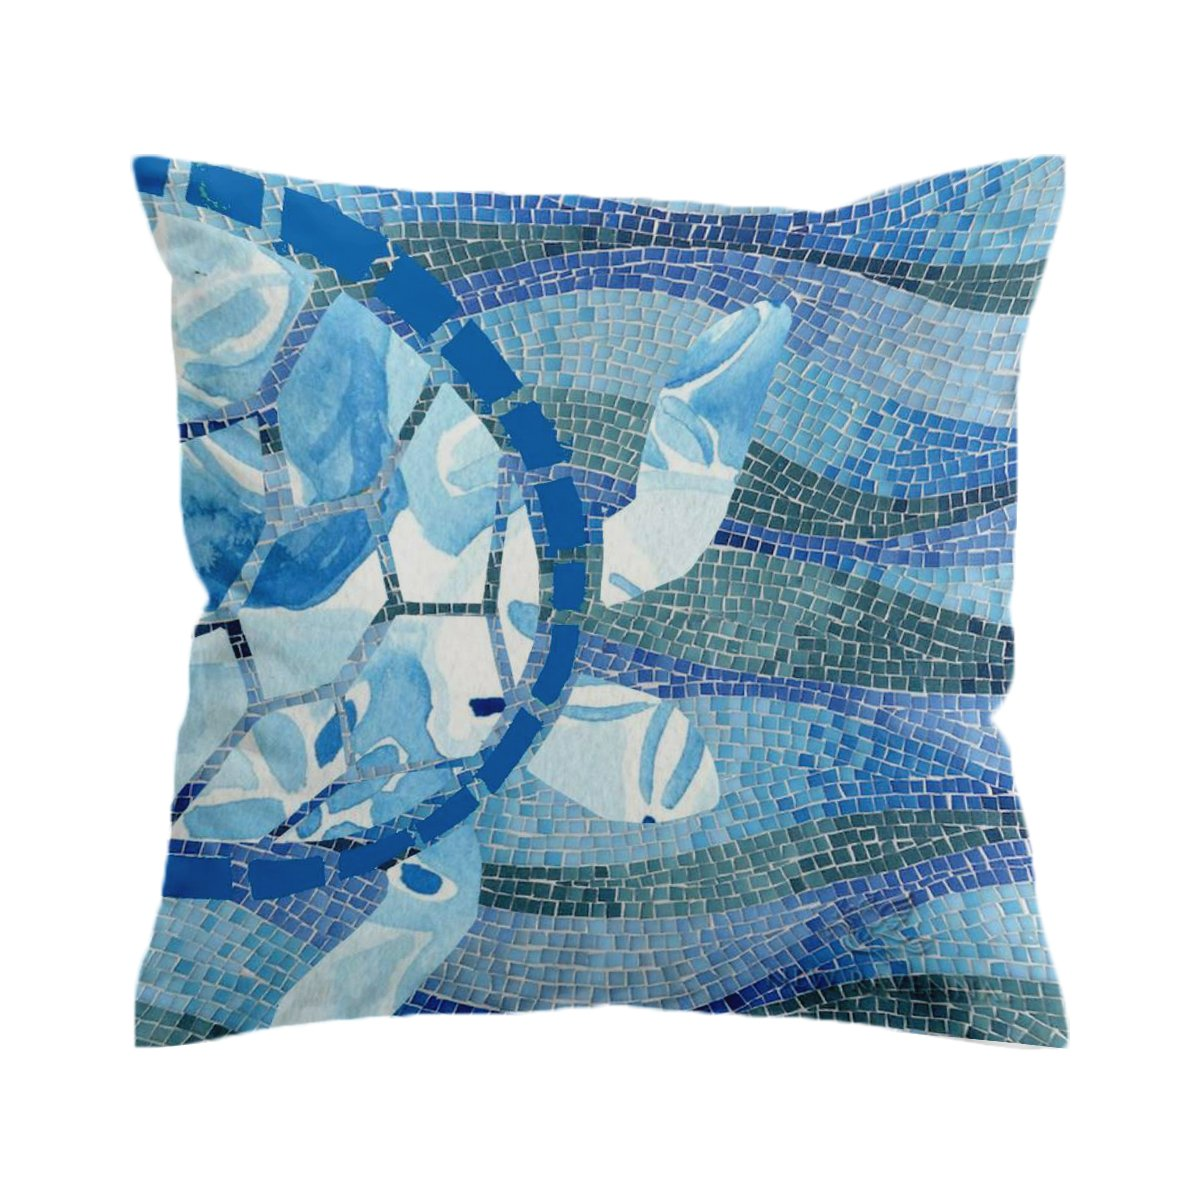 Sea Turtle Mosaic Pillow Cover